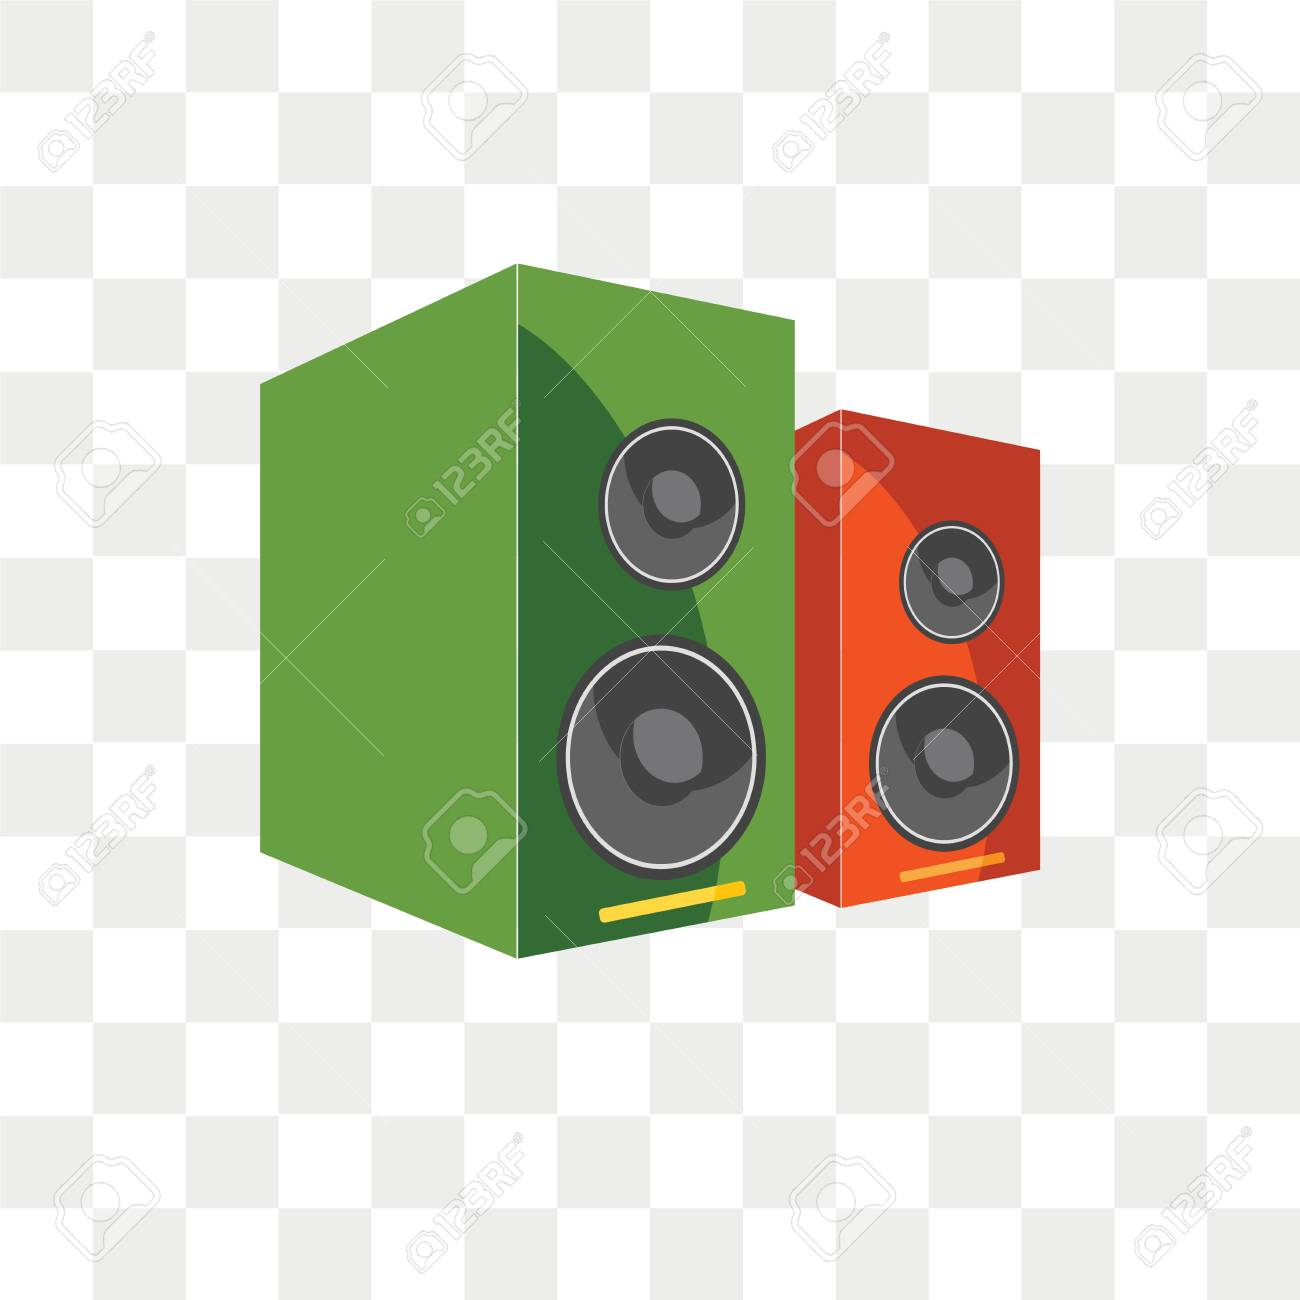 speakers vector icon isolated on transparent background speakers royalty free cliparts vectors and stock illustration image 108635265 speakers vector icon isolated on transparent background speakers